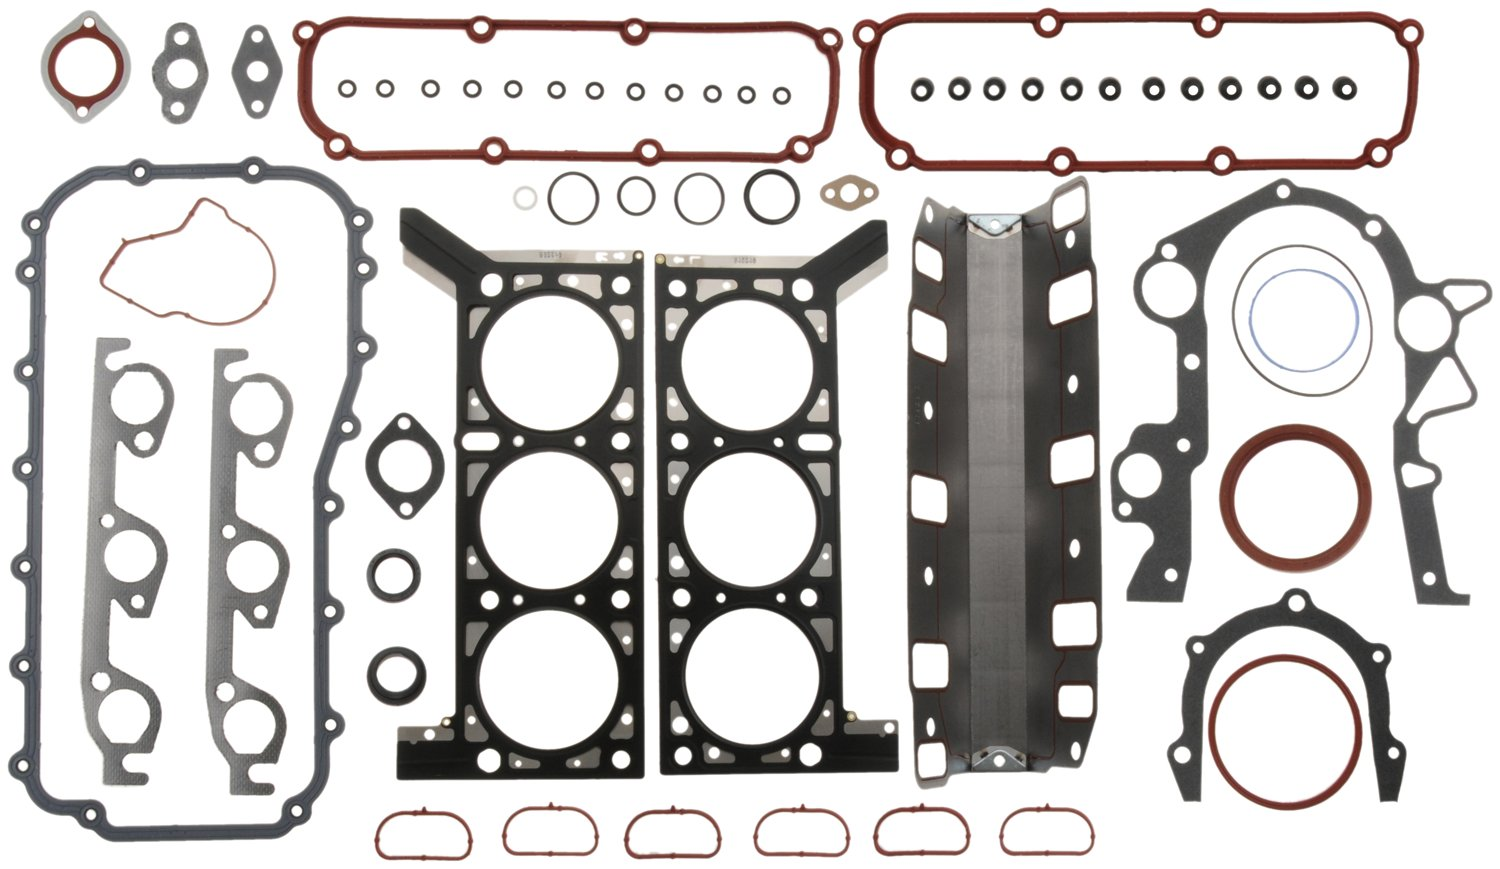 4ulp6 Dodge Intrepid Es Need Replace Head Gaskets moreover Nissan Altima 2 5l Engine Diagram further P 0996b43f80806052 furthermore Engine Timing Belt Cover together with Axle Half Retaining Rings. on chrysler pacifica camshaft seal